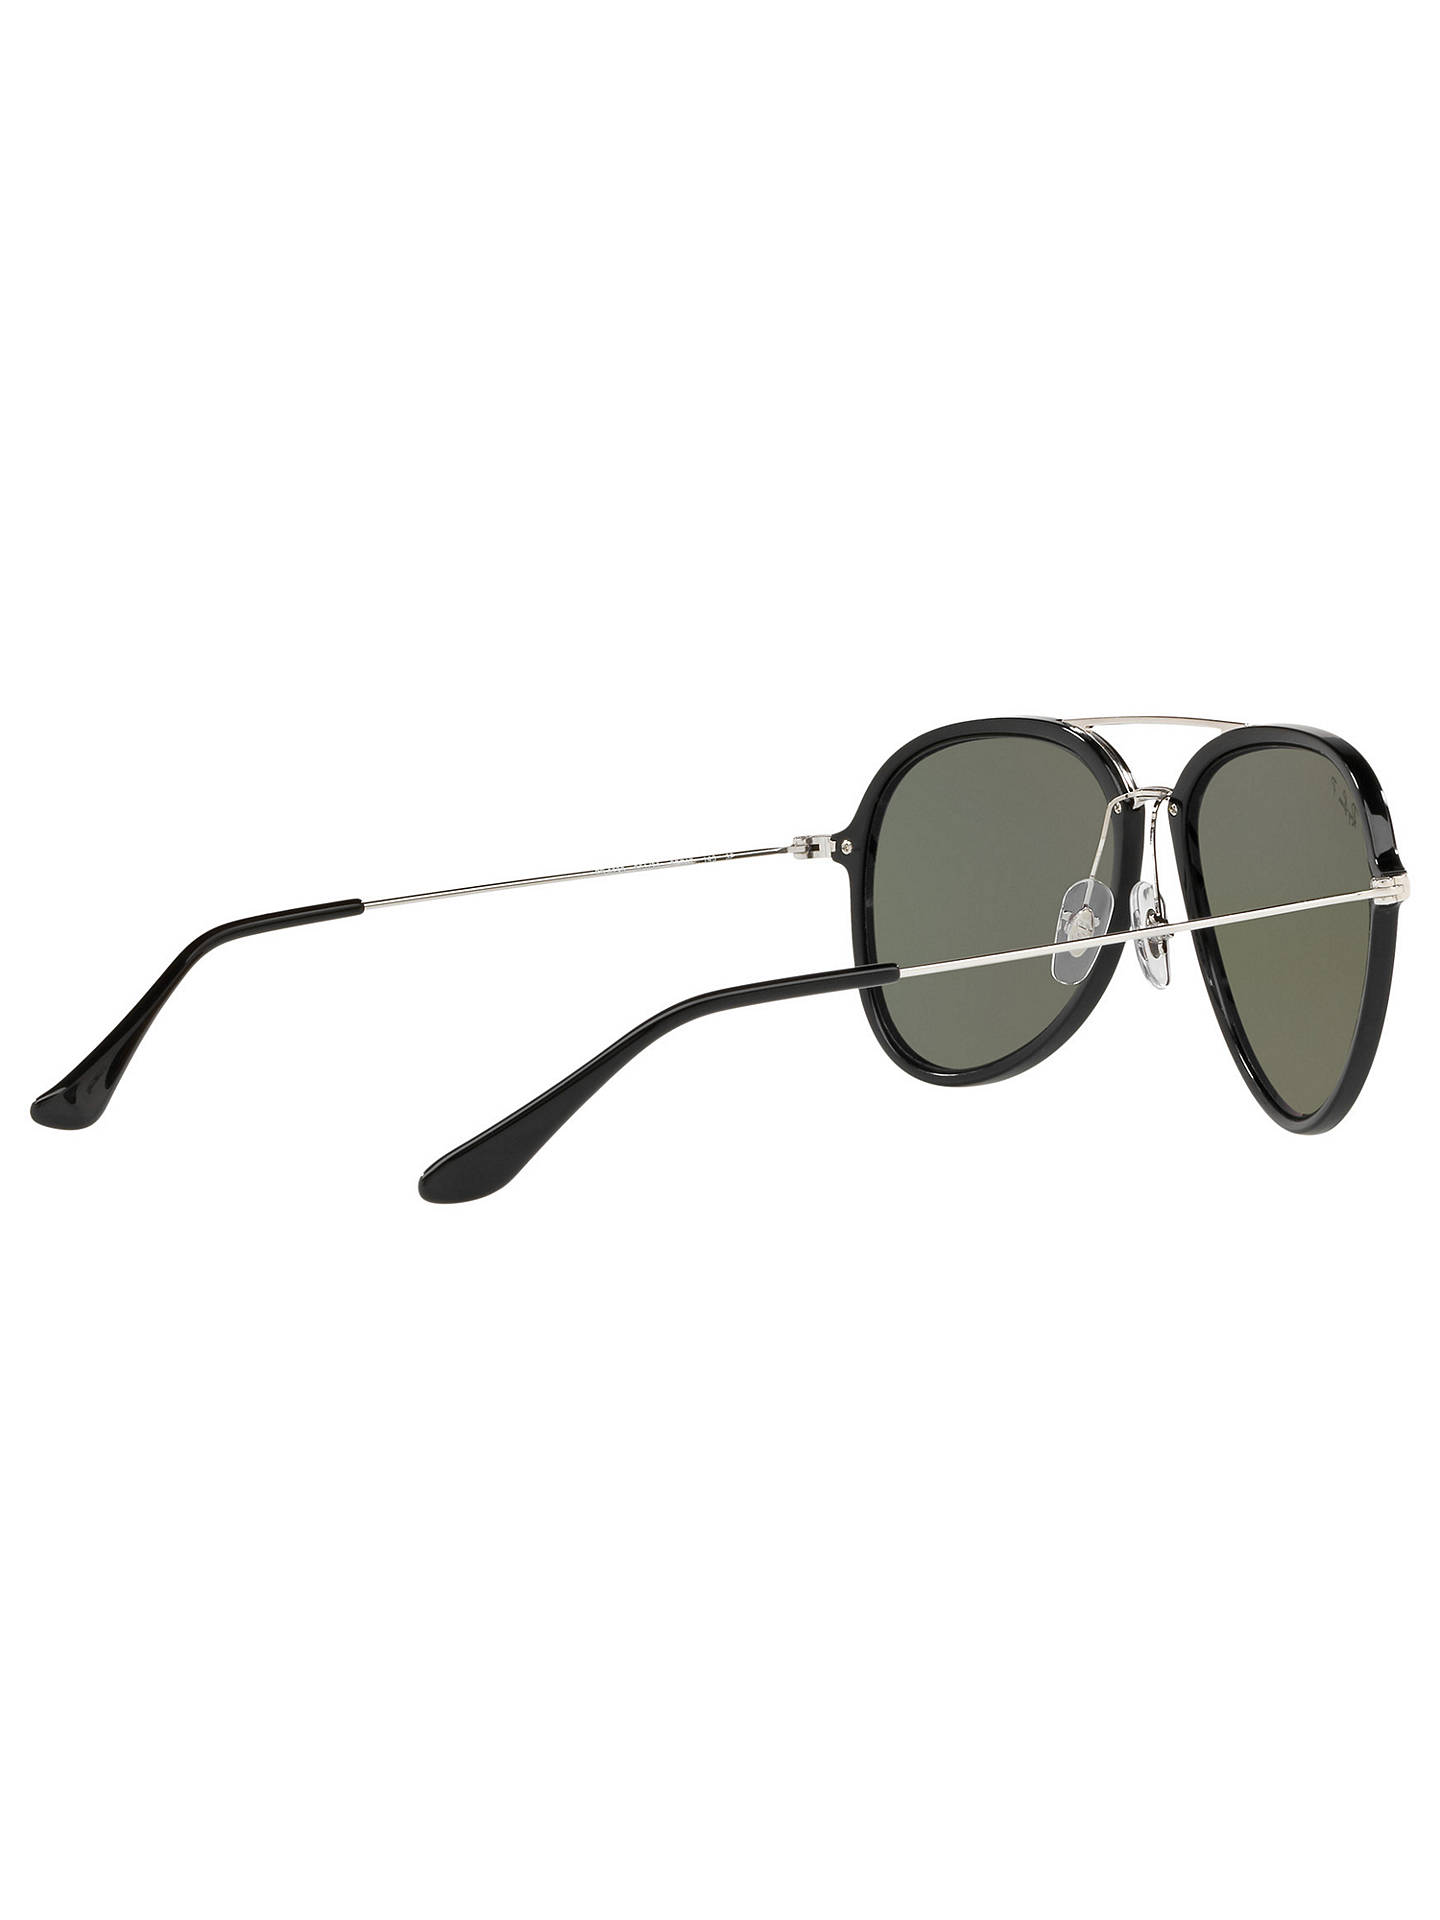 Buy Ray-Ban RB4298 Polarised Aviator Sunglasses, Black/Green Online at johnlewis.com